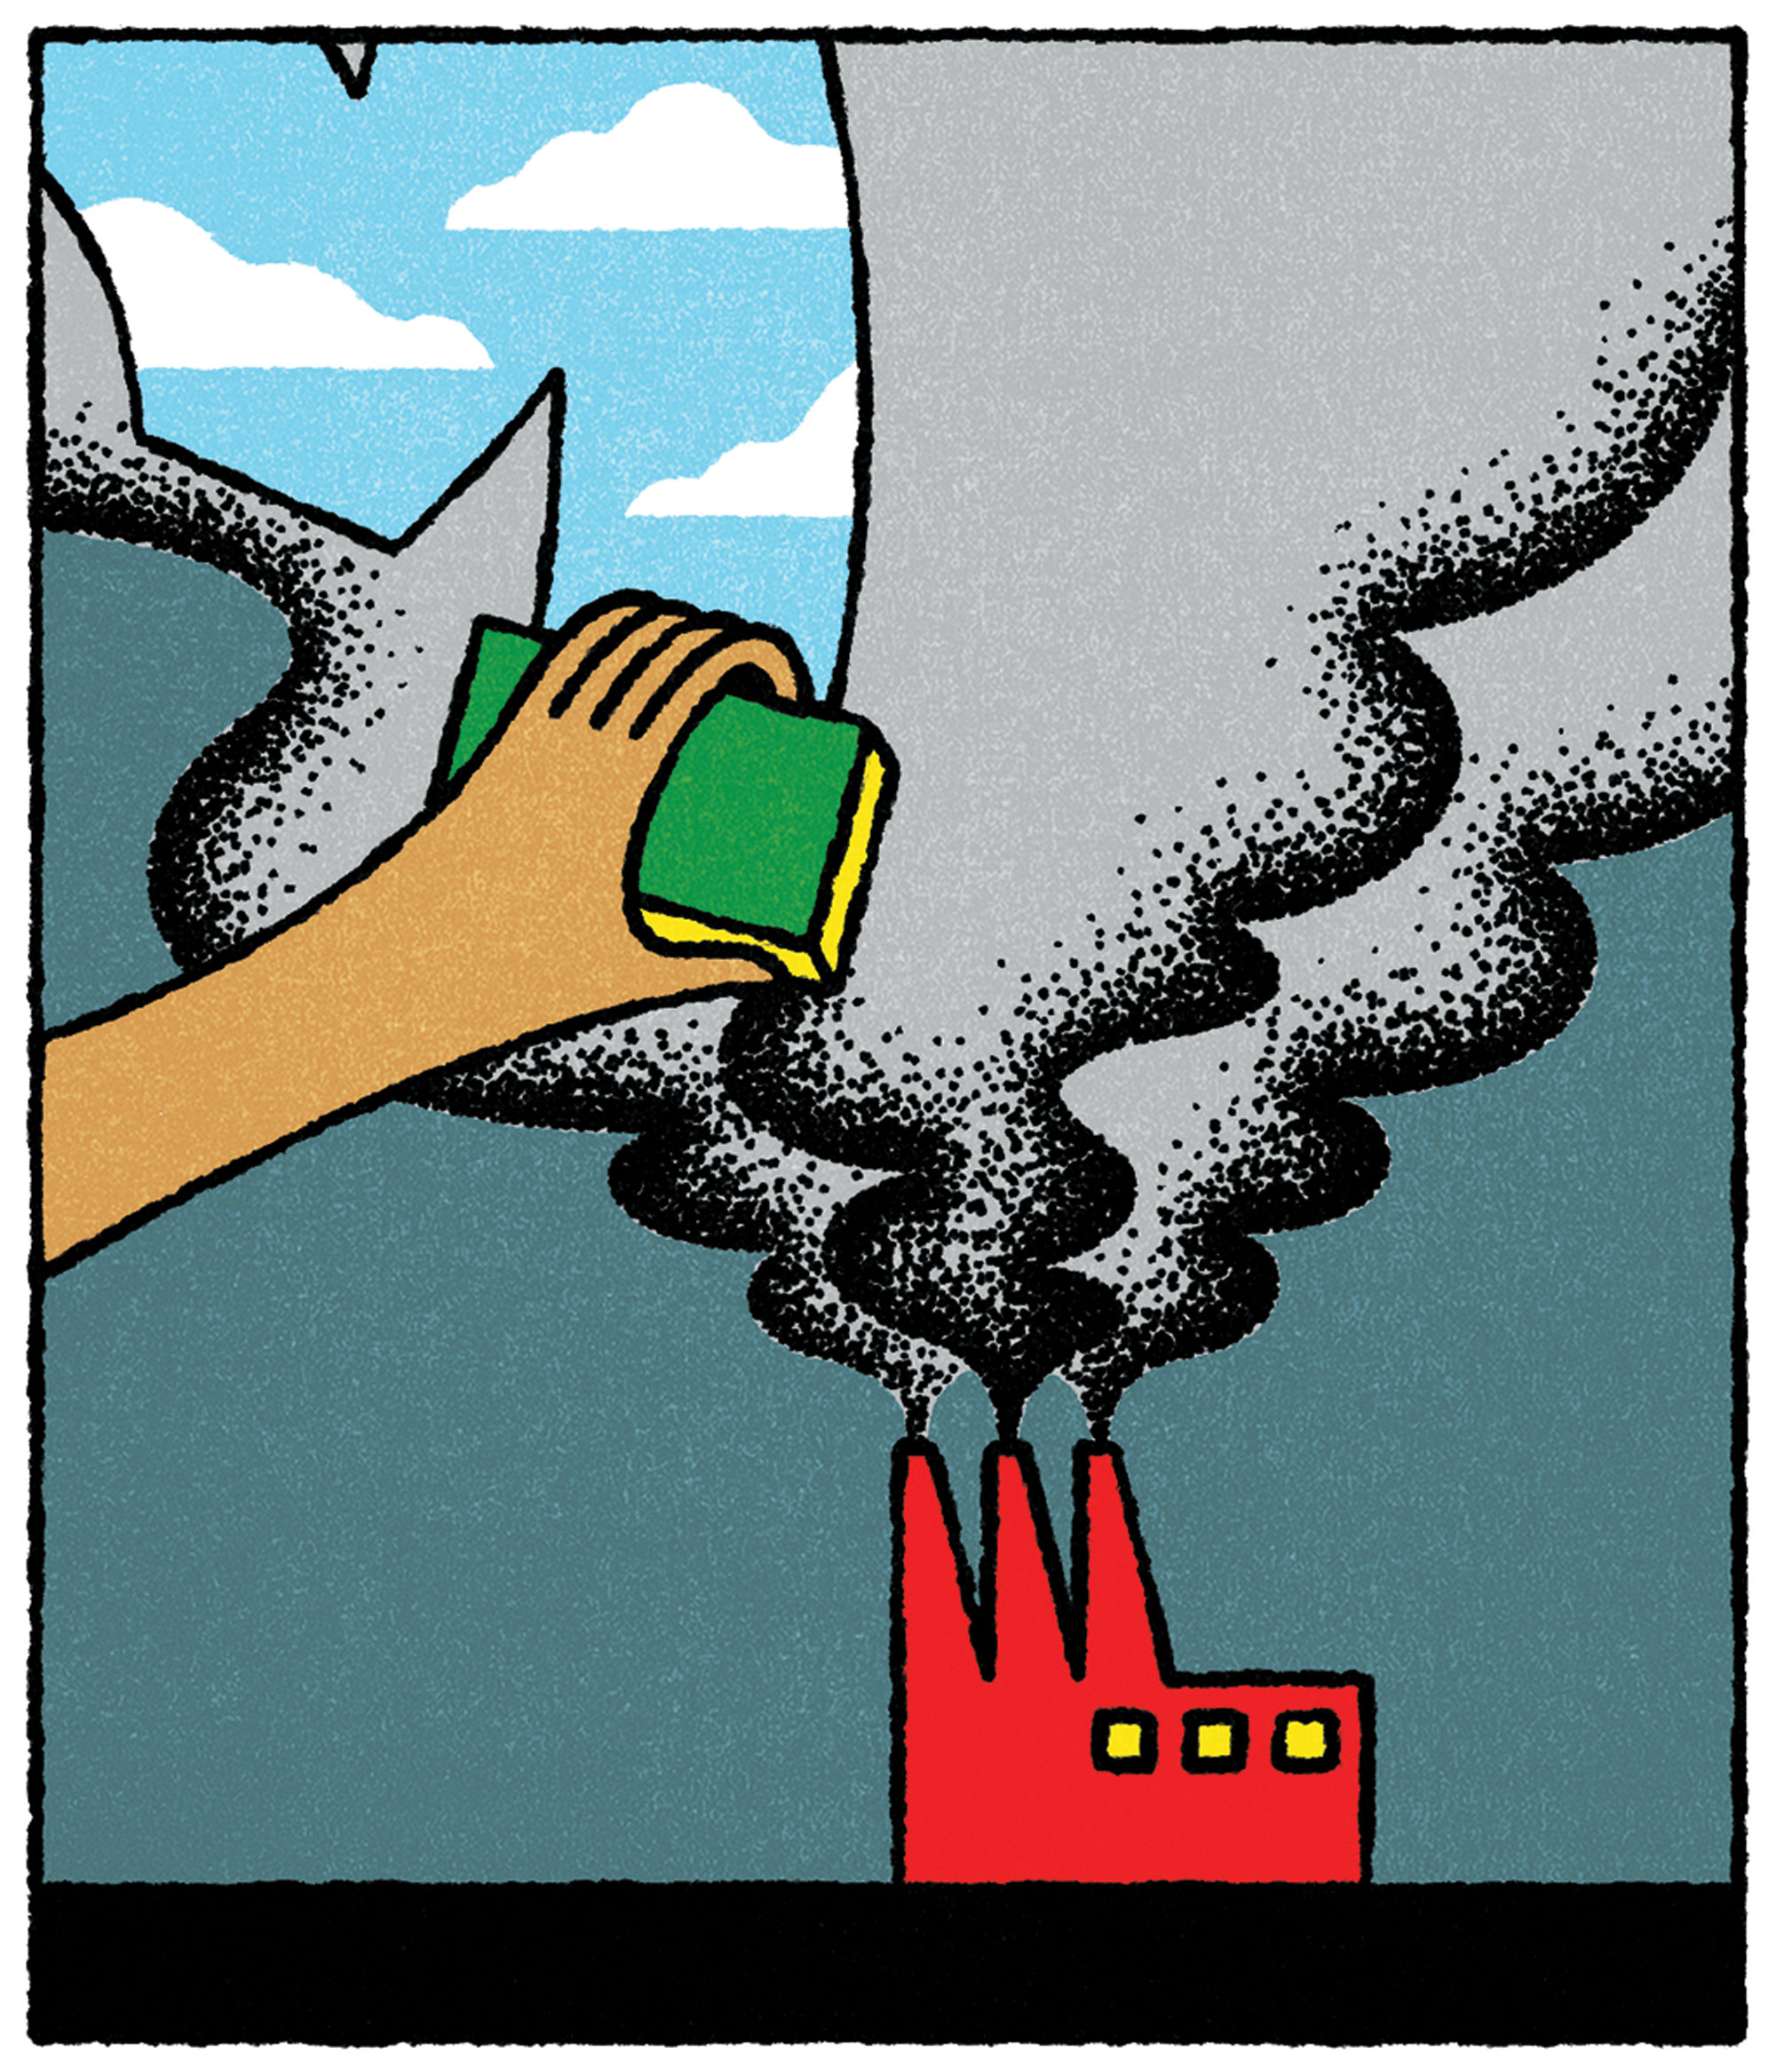 An illustration of a hand wiping away air pollution from the sky above a smokestack.